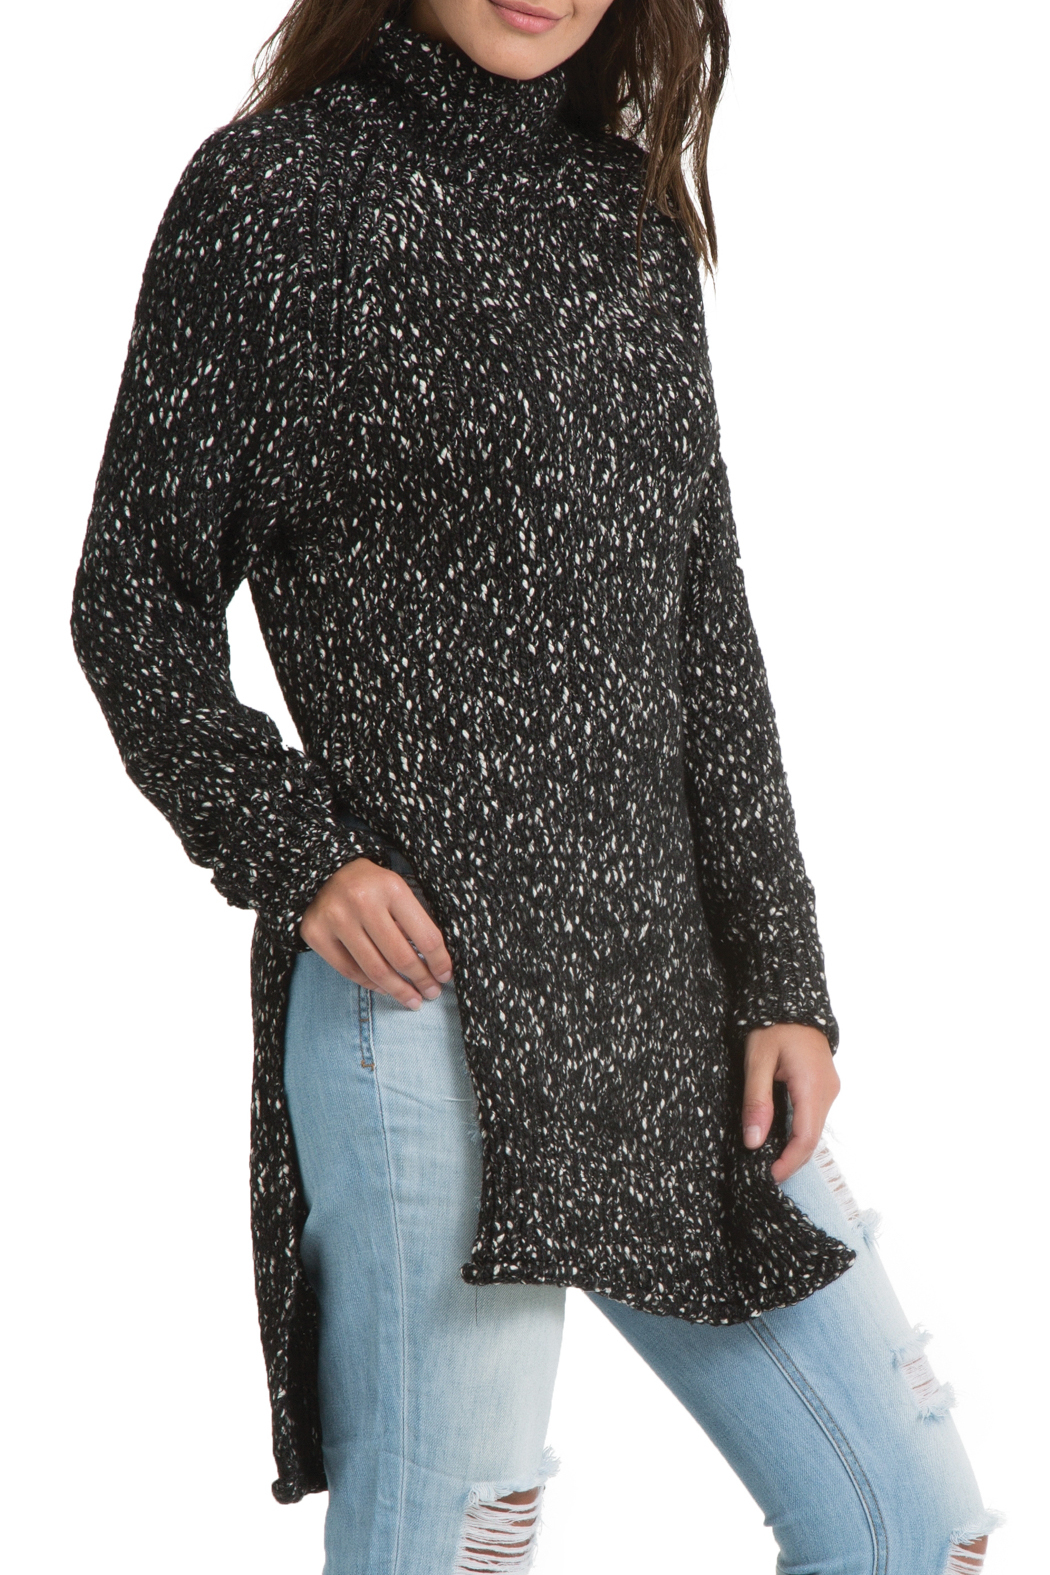 Elan Turtleneck Tunic Sweater from Montana by Apricot Lane ...